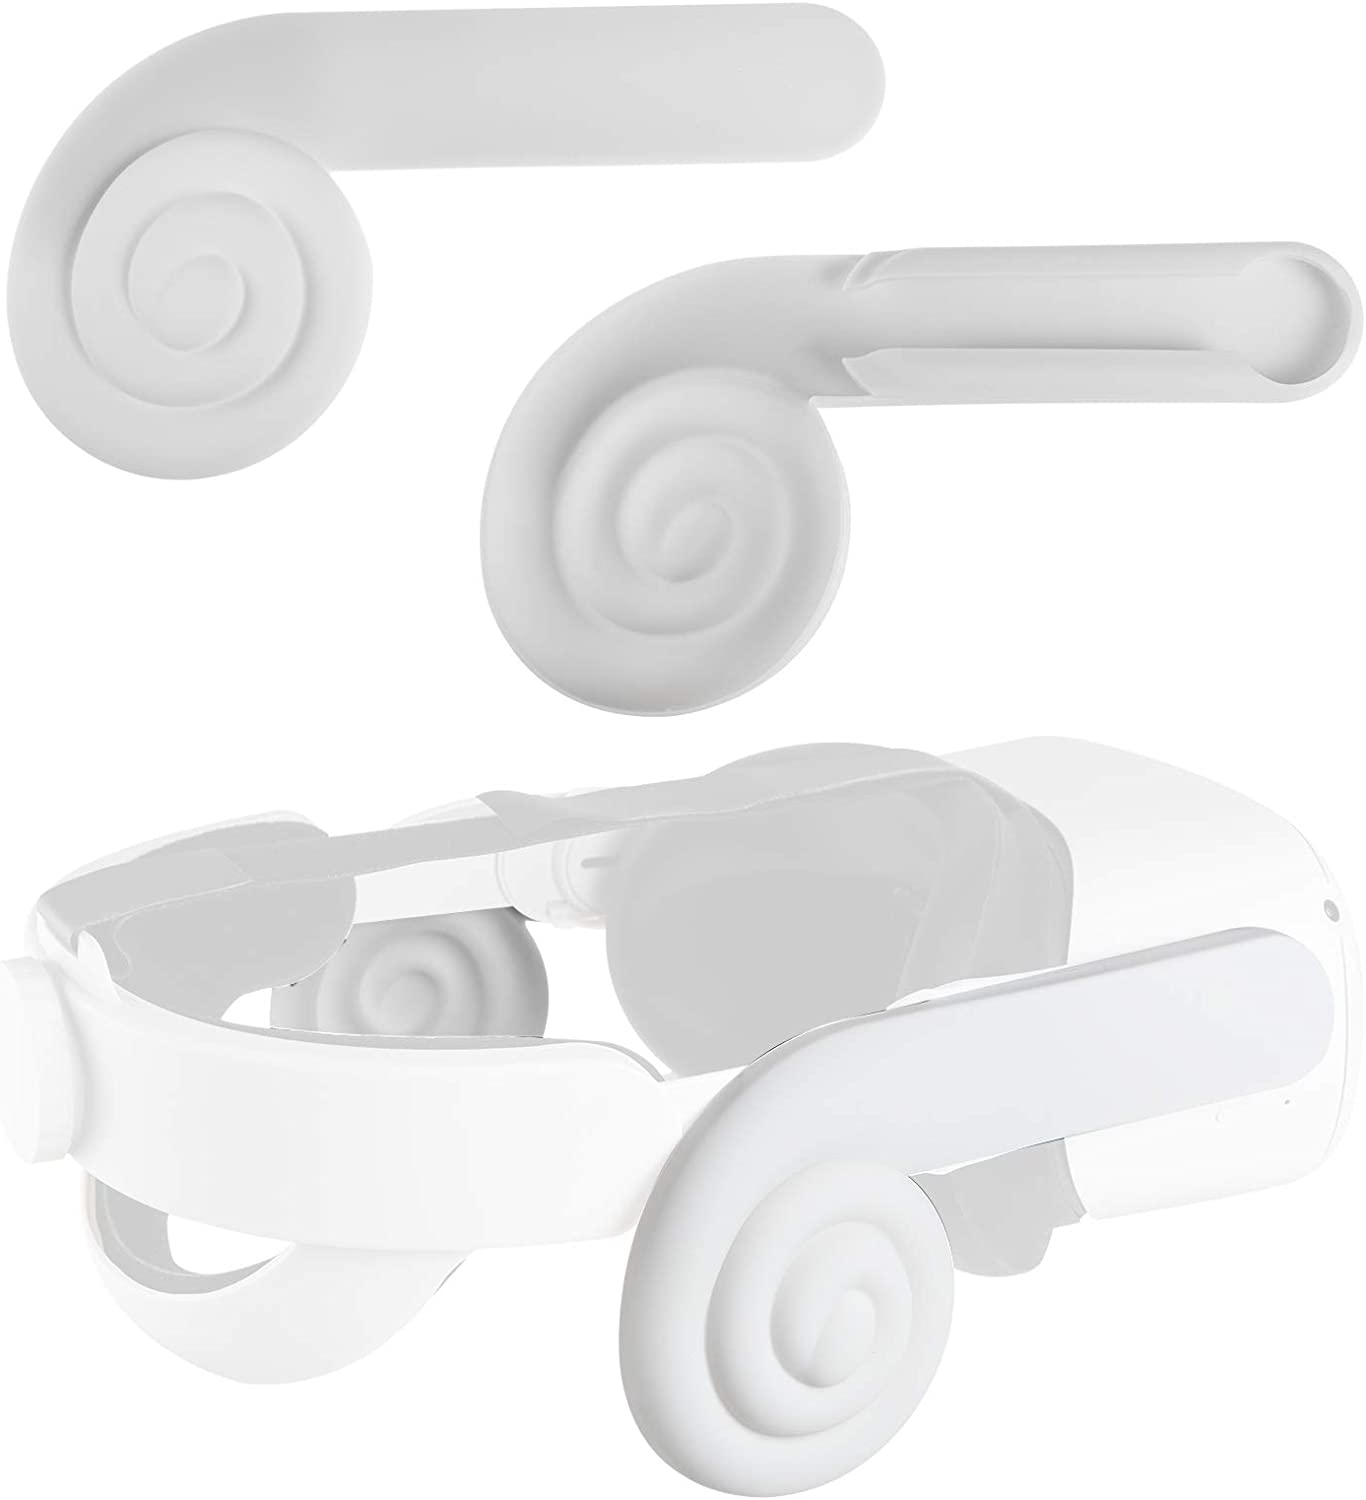 (1 Pair) Seltureone Silicone Ear Muffs Compatible for Oculus Quest 2 VR Headset, Enhancing Sound Ear Cups Accessories for Quest 2 Headphones, White